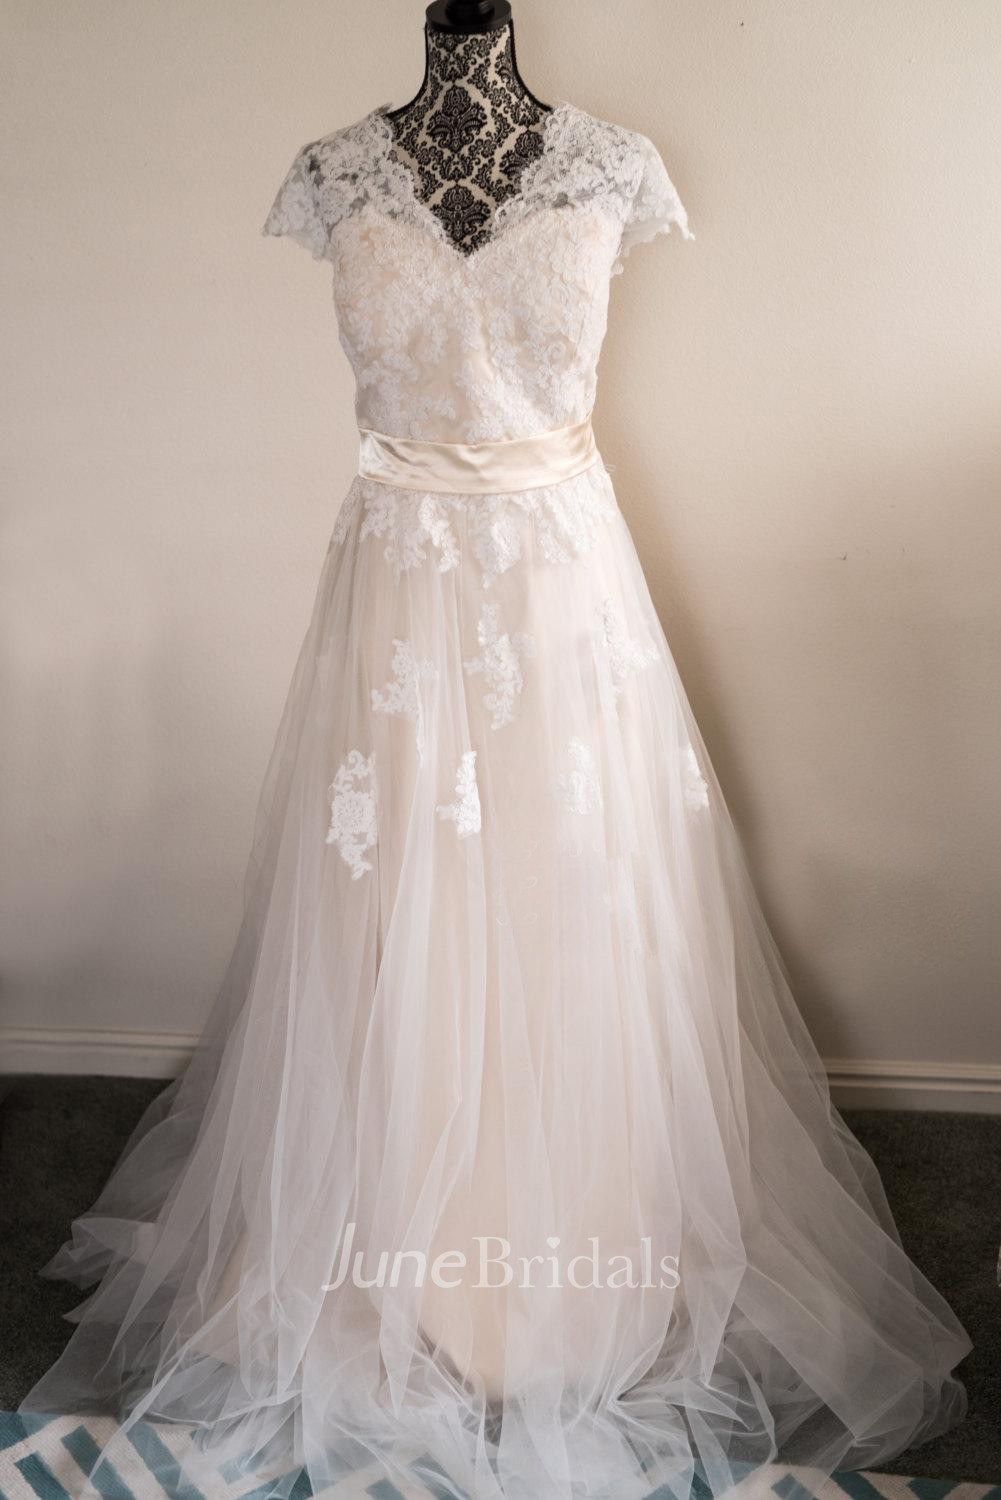 V Neck Cap Sleeve A Line Tulle Skirt Lace Bodice A Line Wedding Dress With Sash